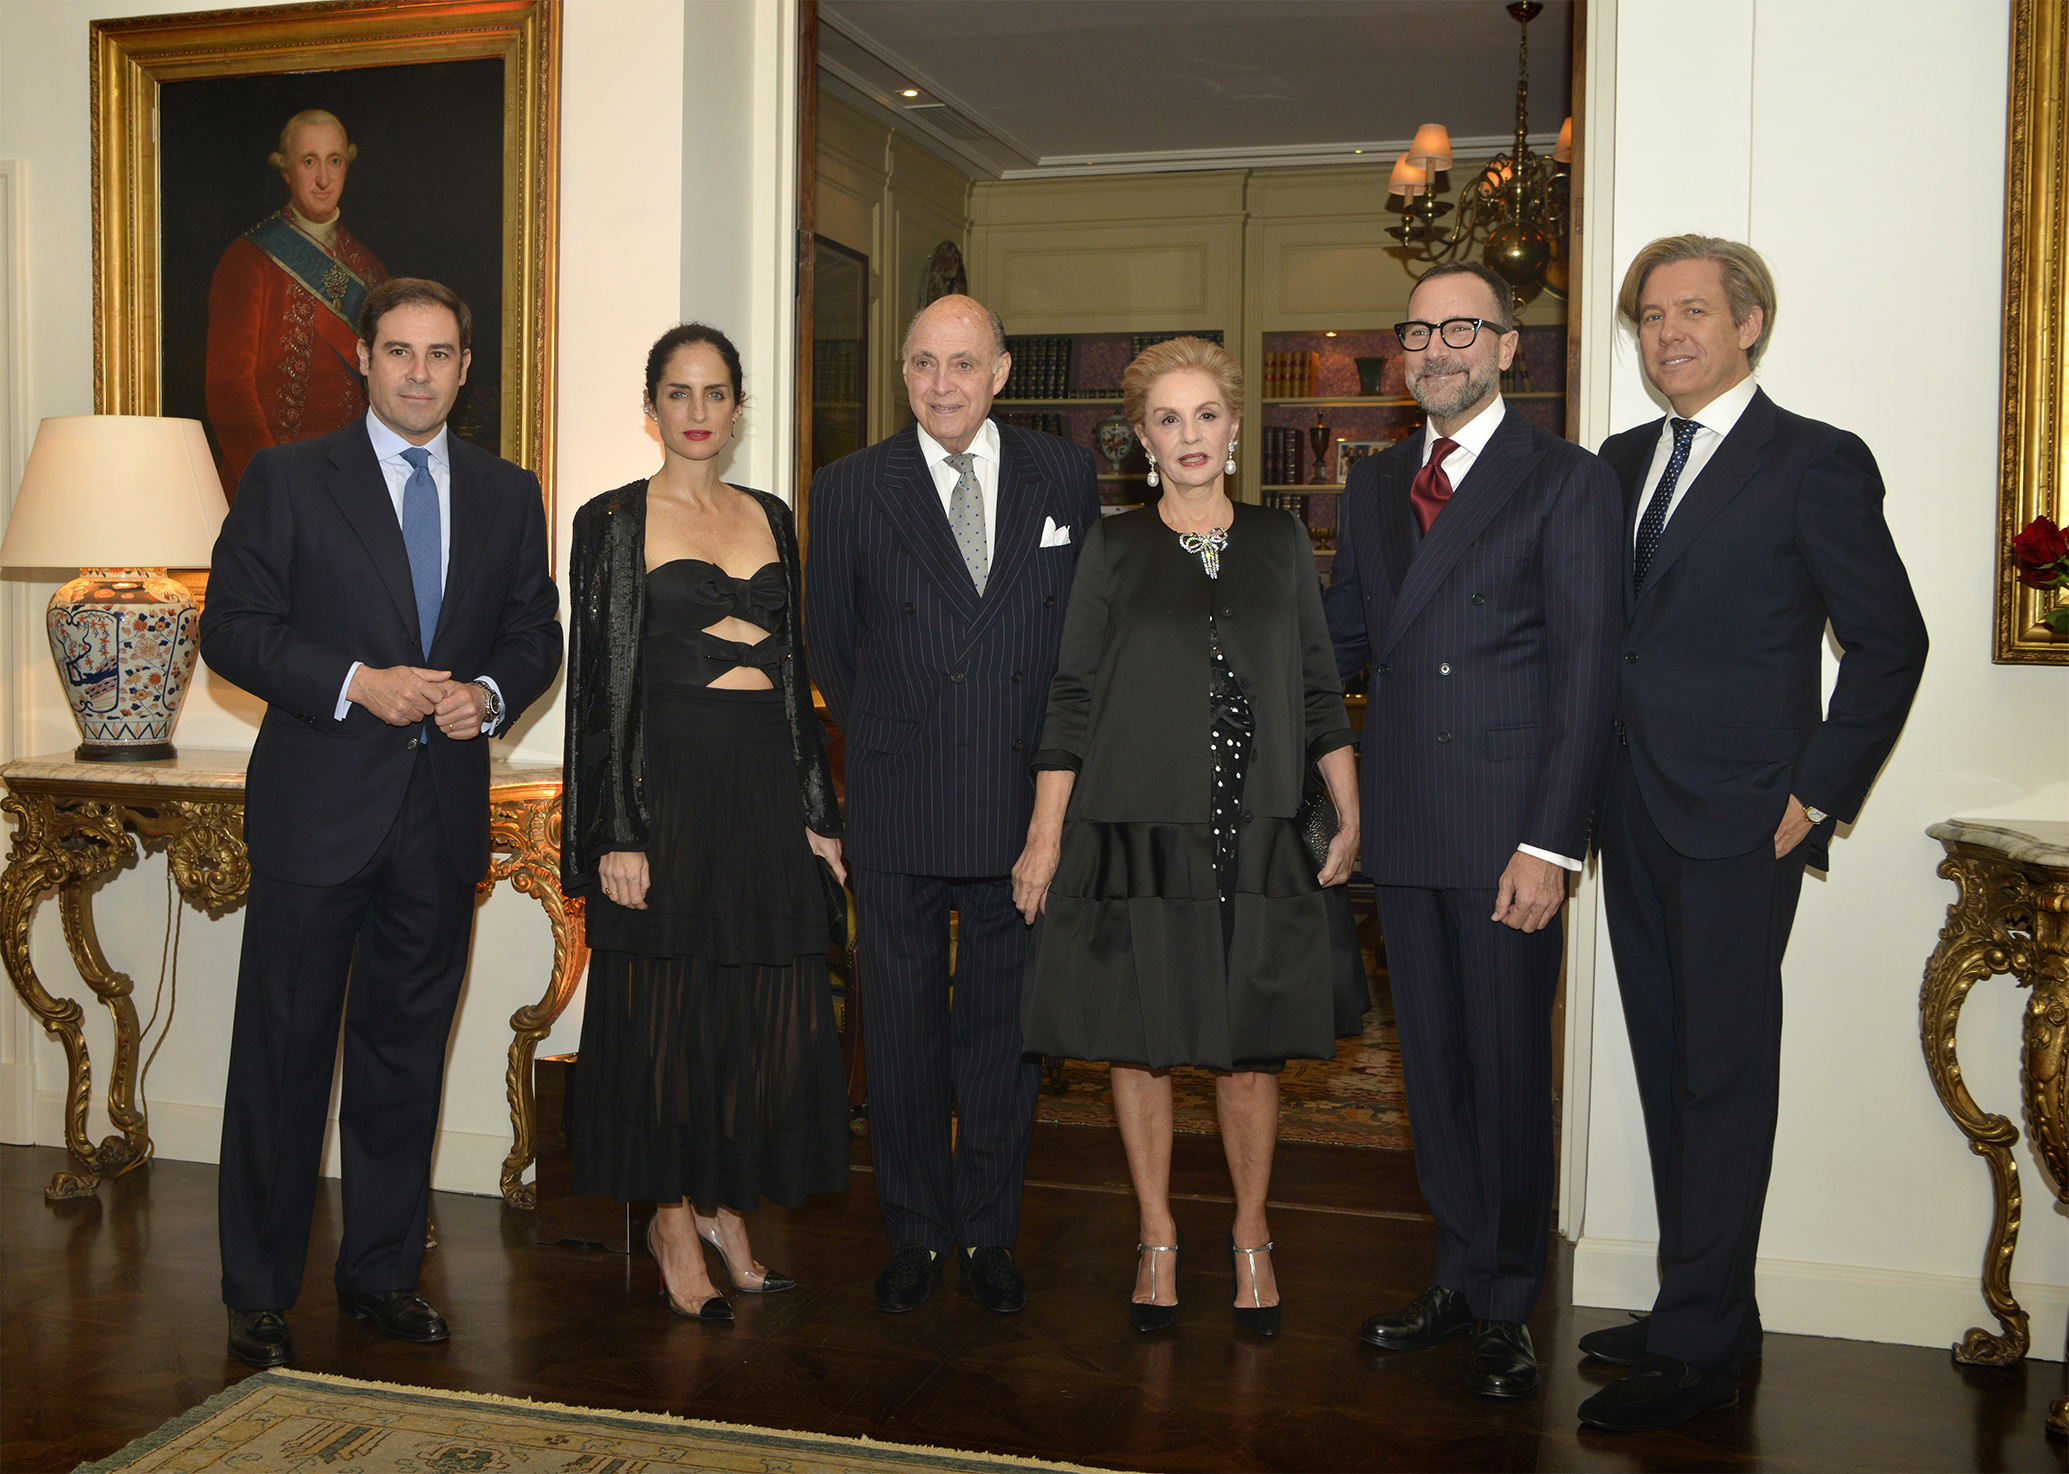 Miguel Báez, Carolina Herrera de Báez, Reinaldo Herrera, Carolina Herrera, Ambassador James Costos and Michael Smith